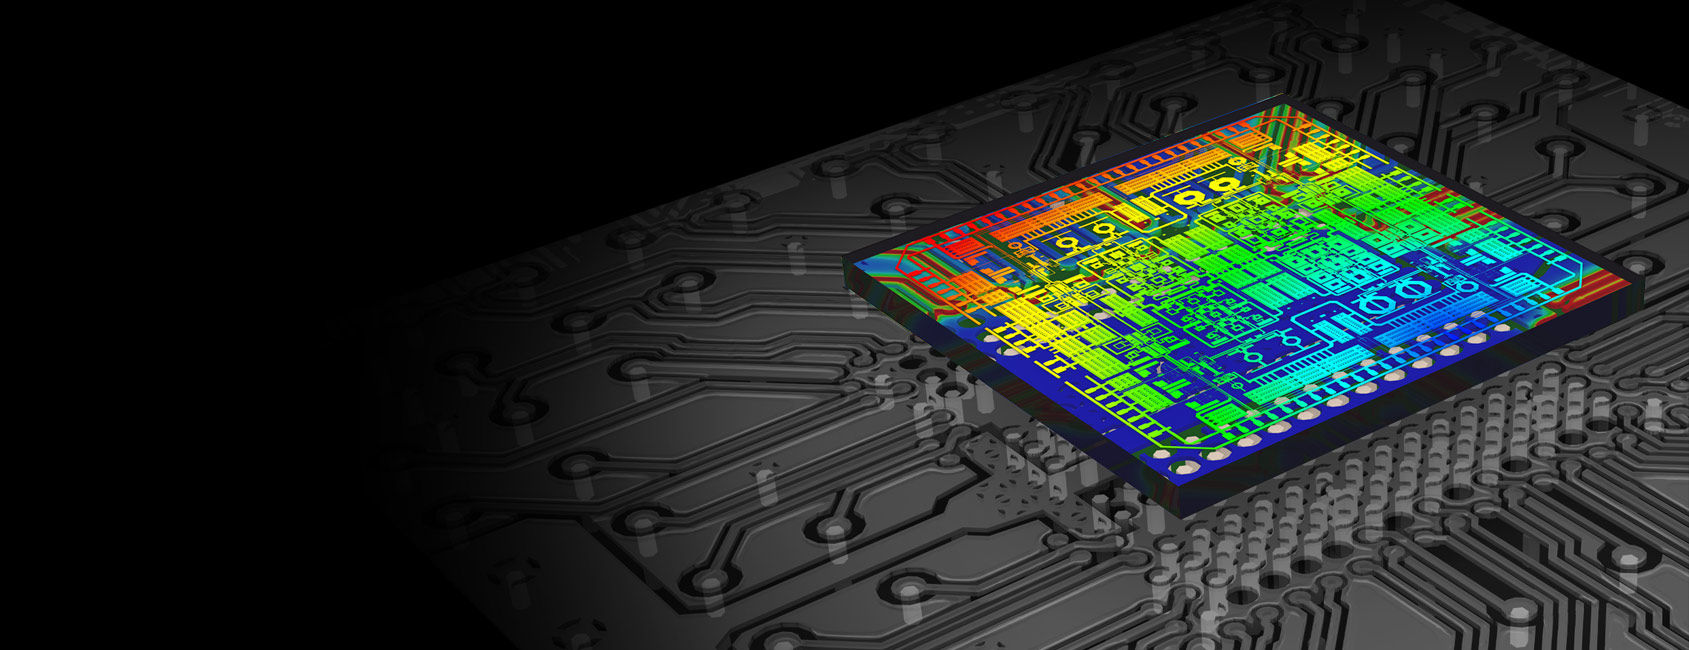 ANSYS 2020 R2 Release